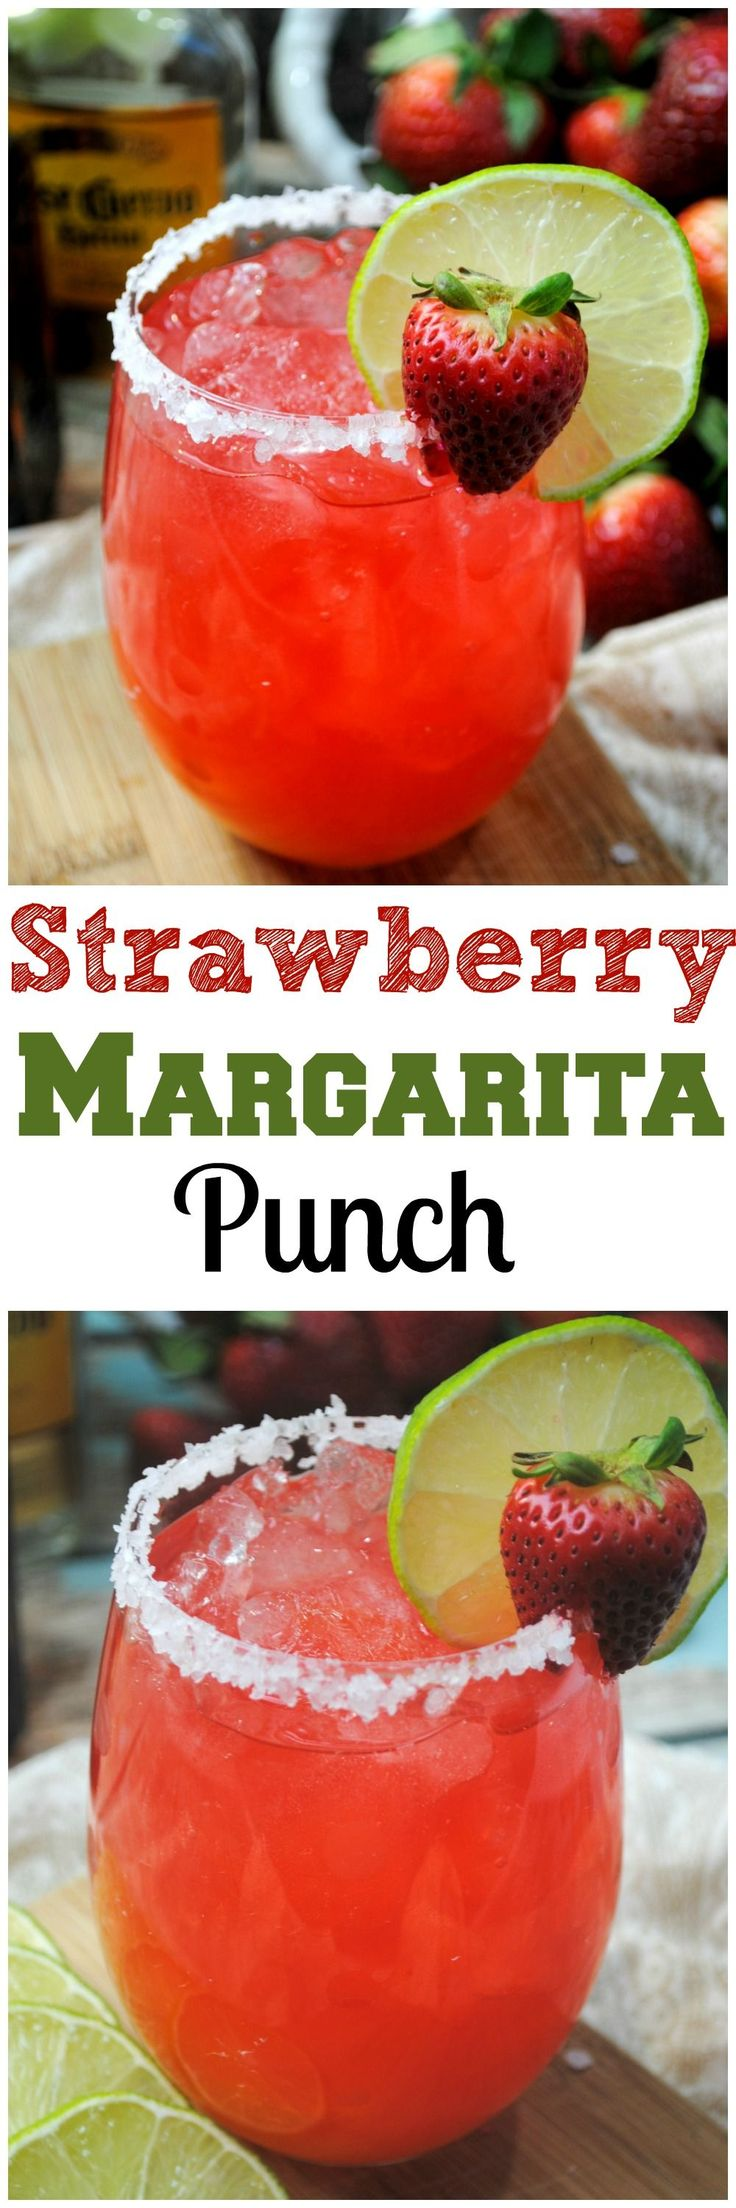 Fizzy Strawberry Margarita PUNCH!